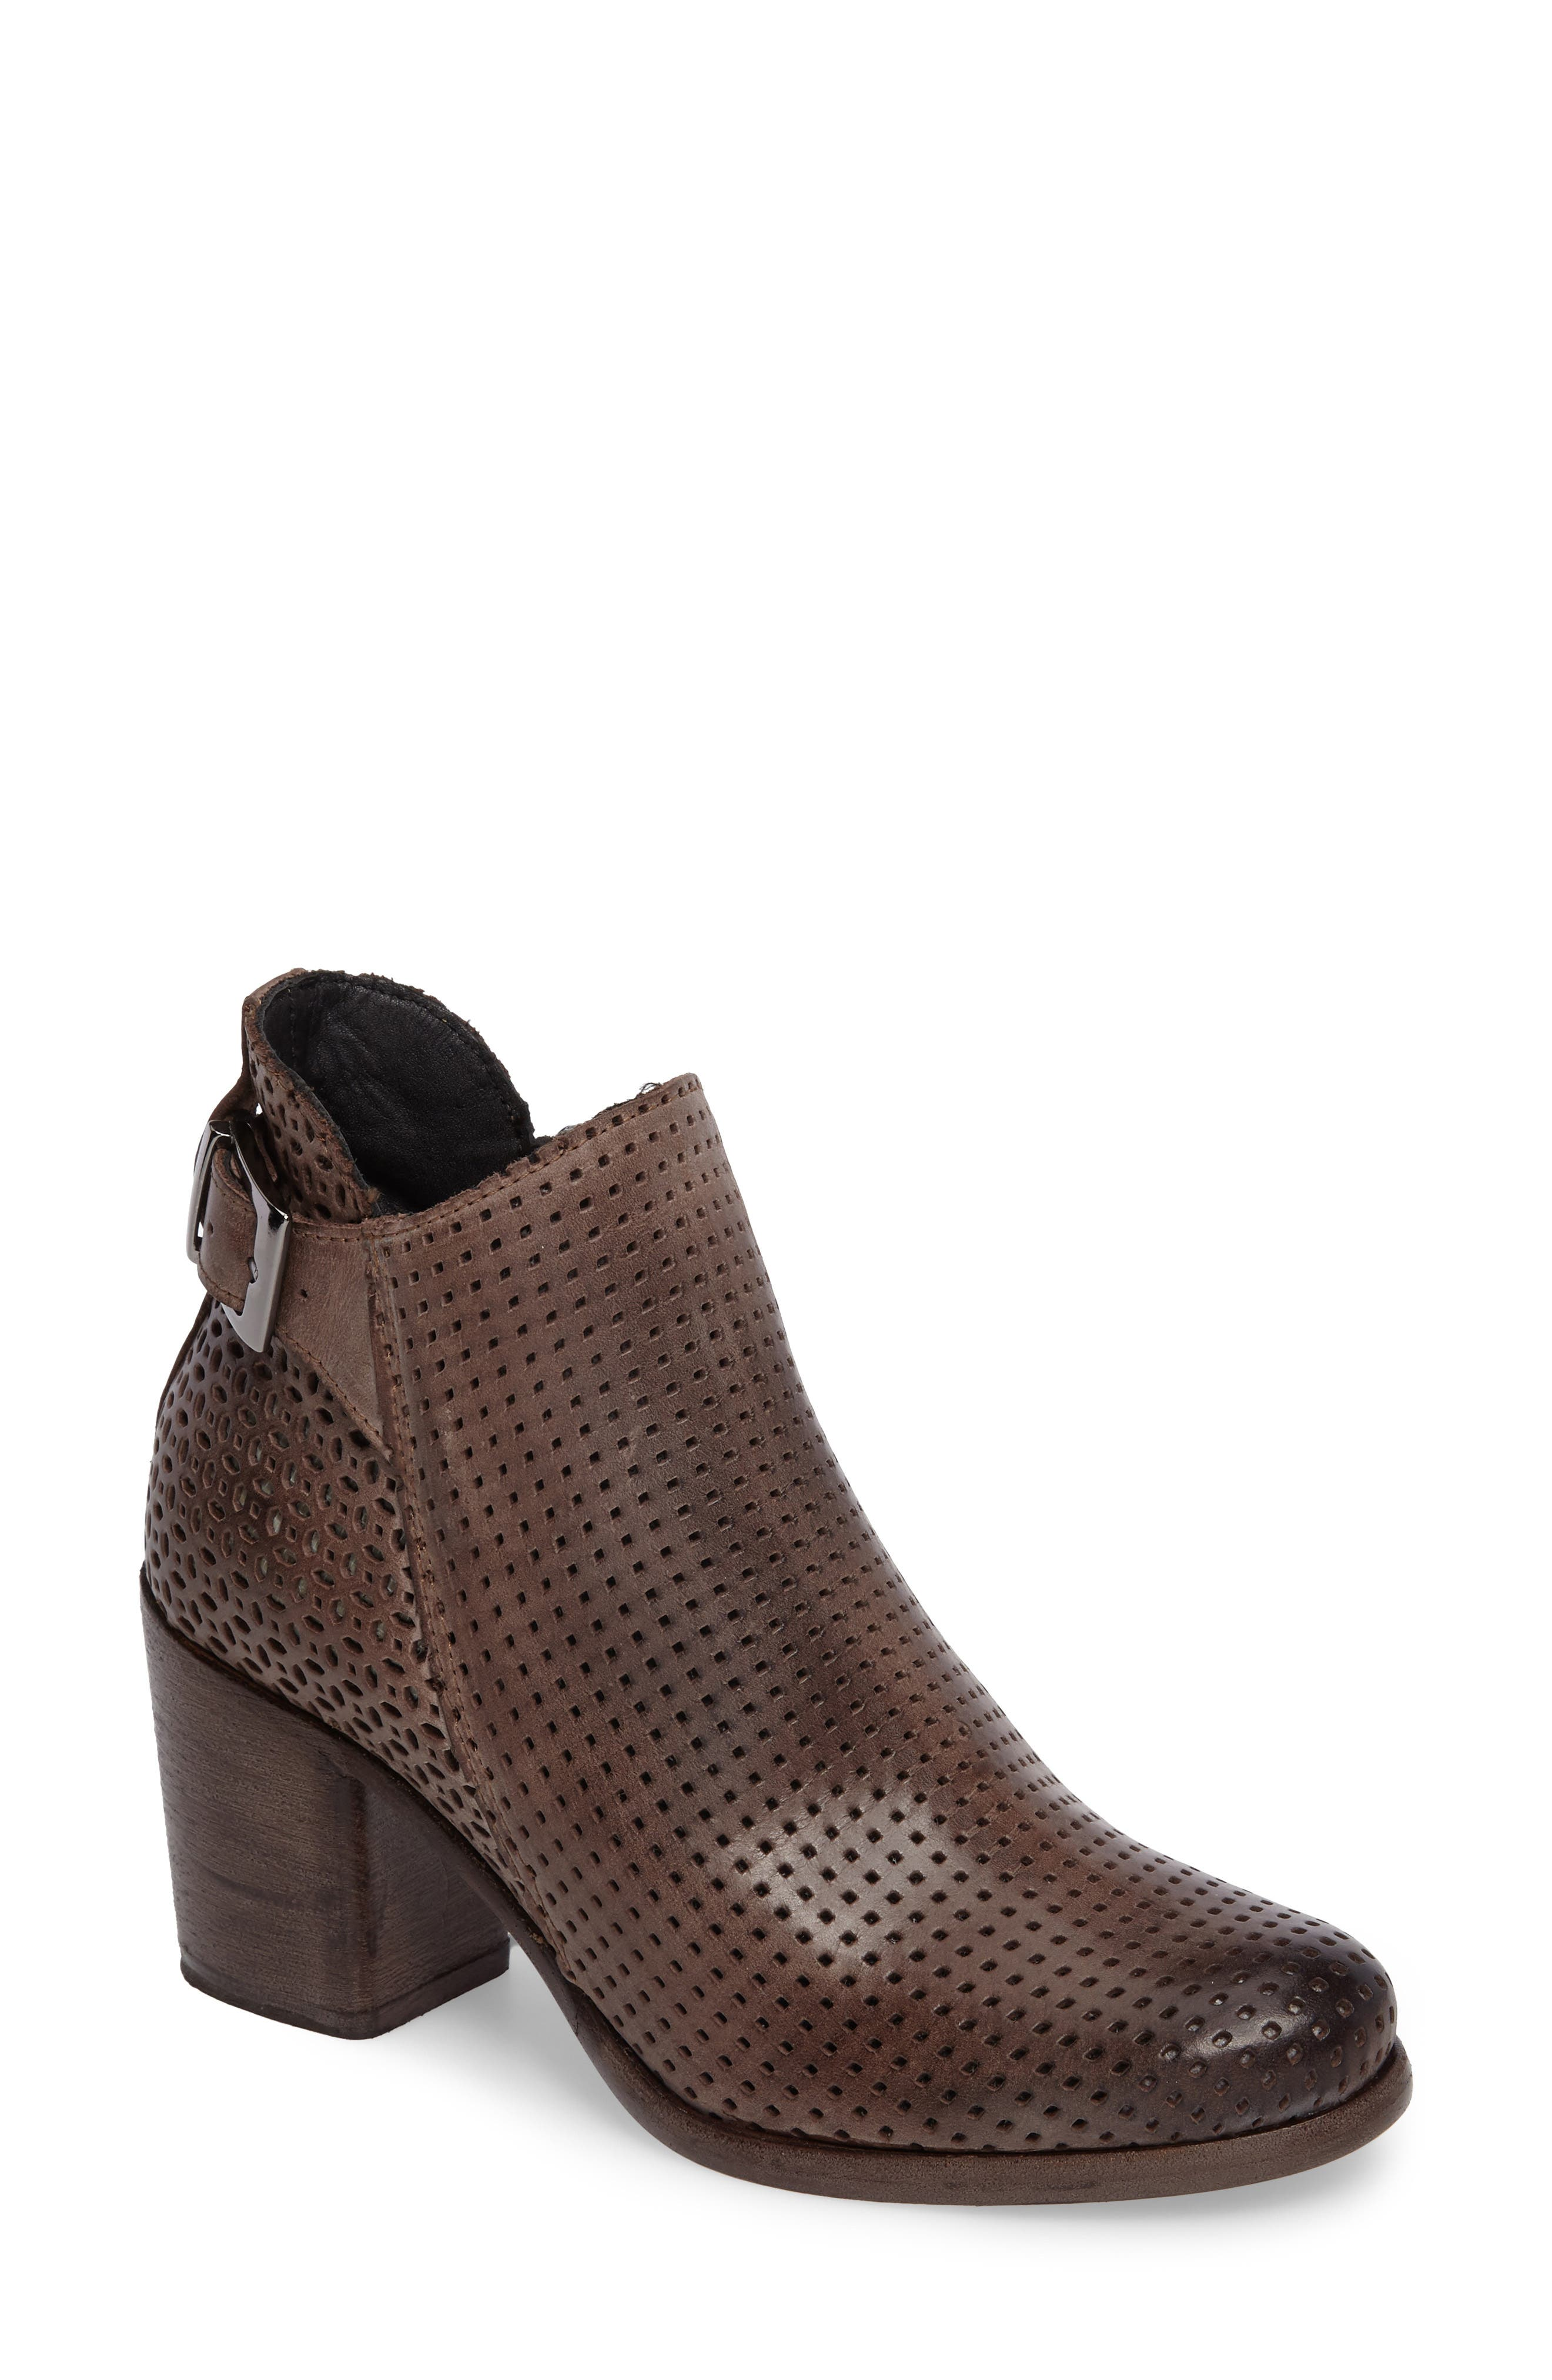 Alternate Image 1 Selected - Naughty Monkey Show Stoppa Perforated Bootie (Women)